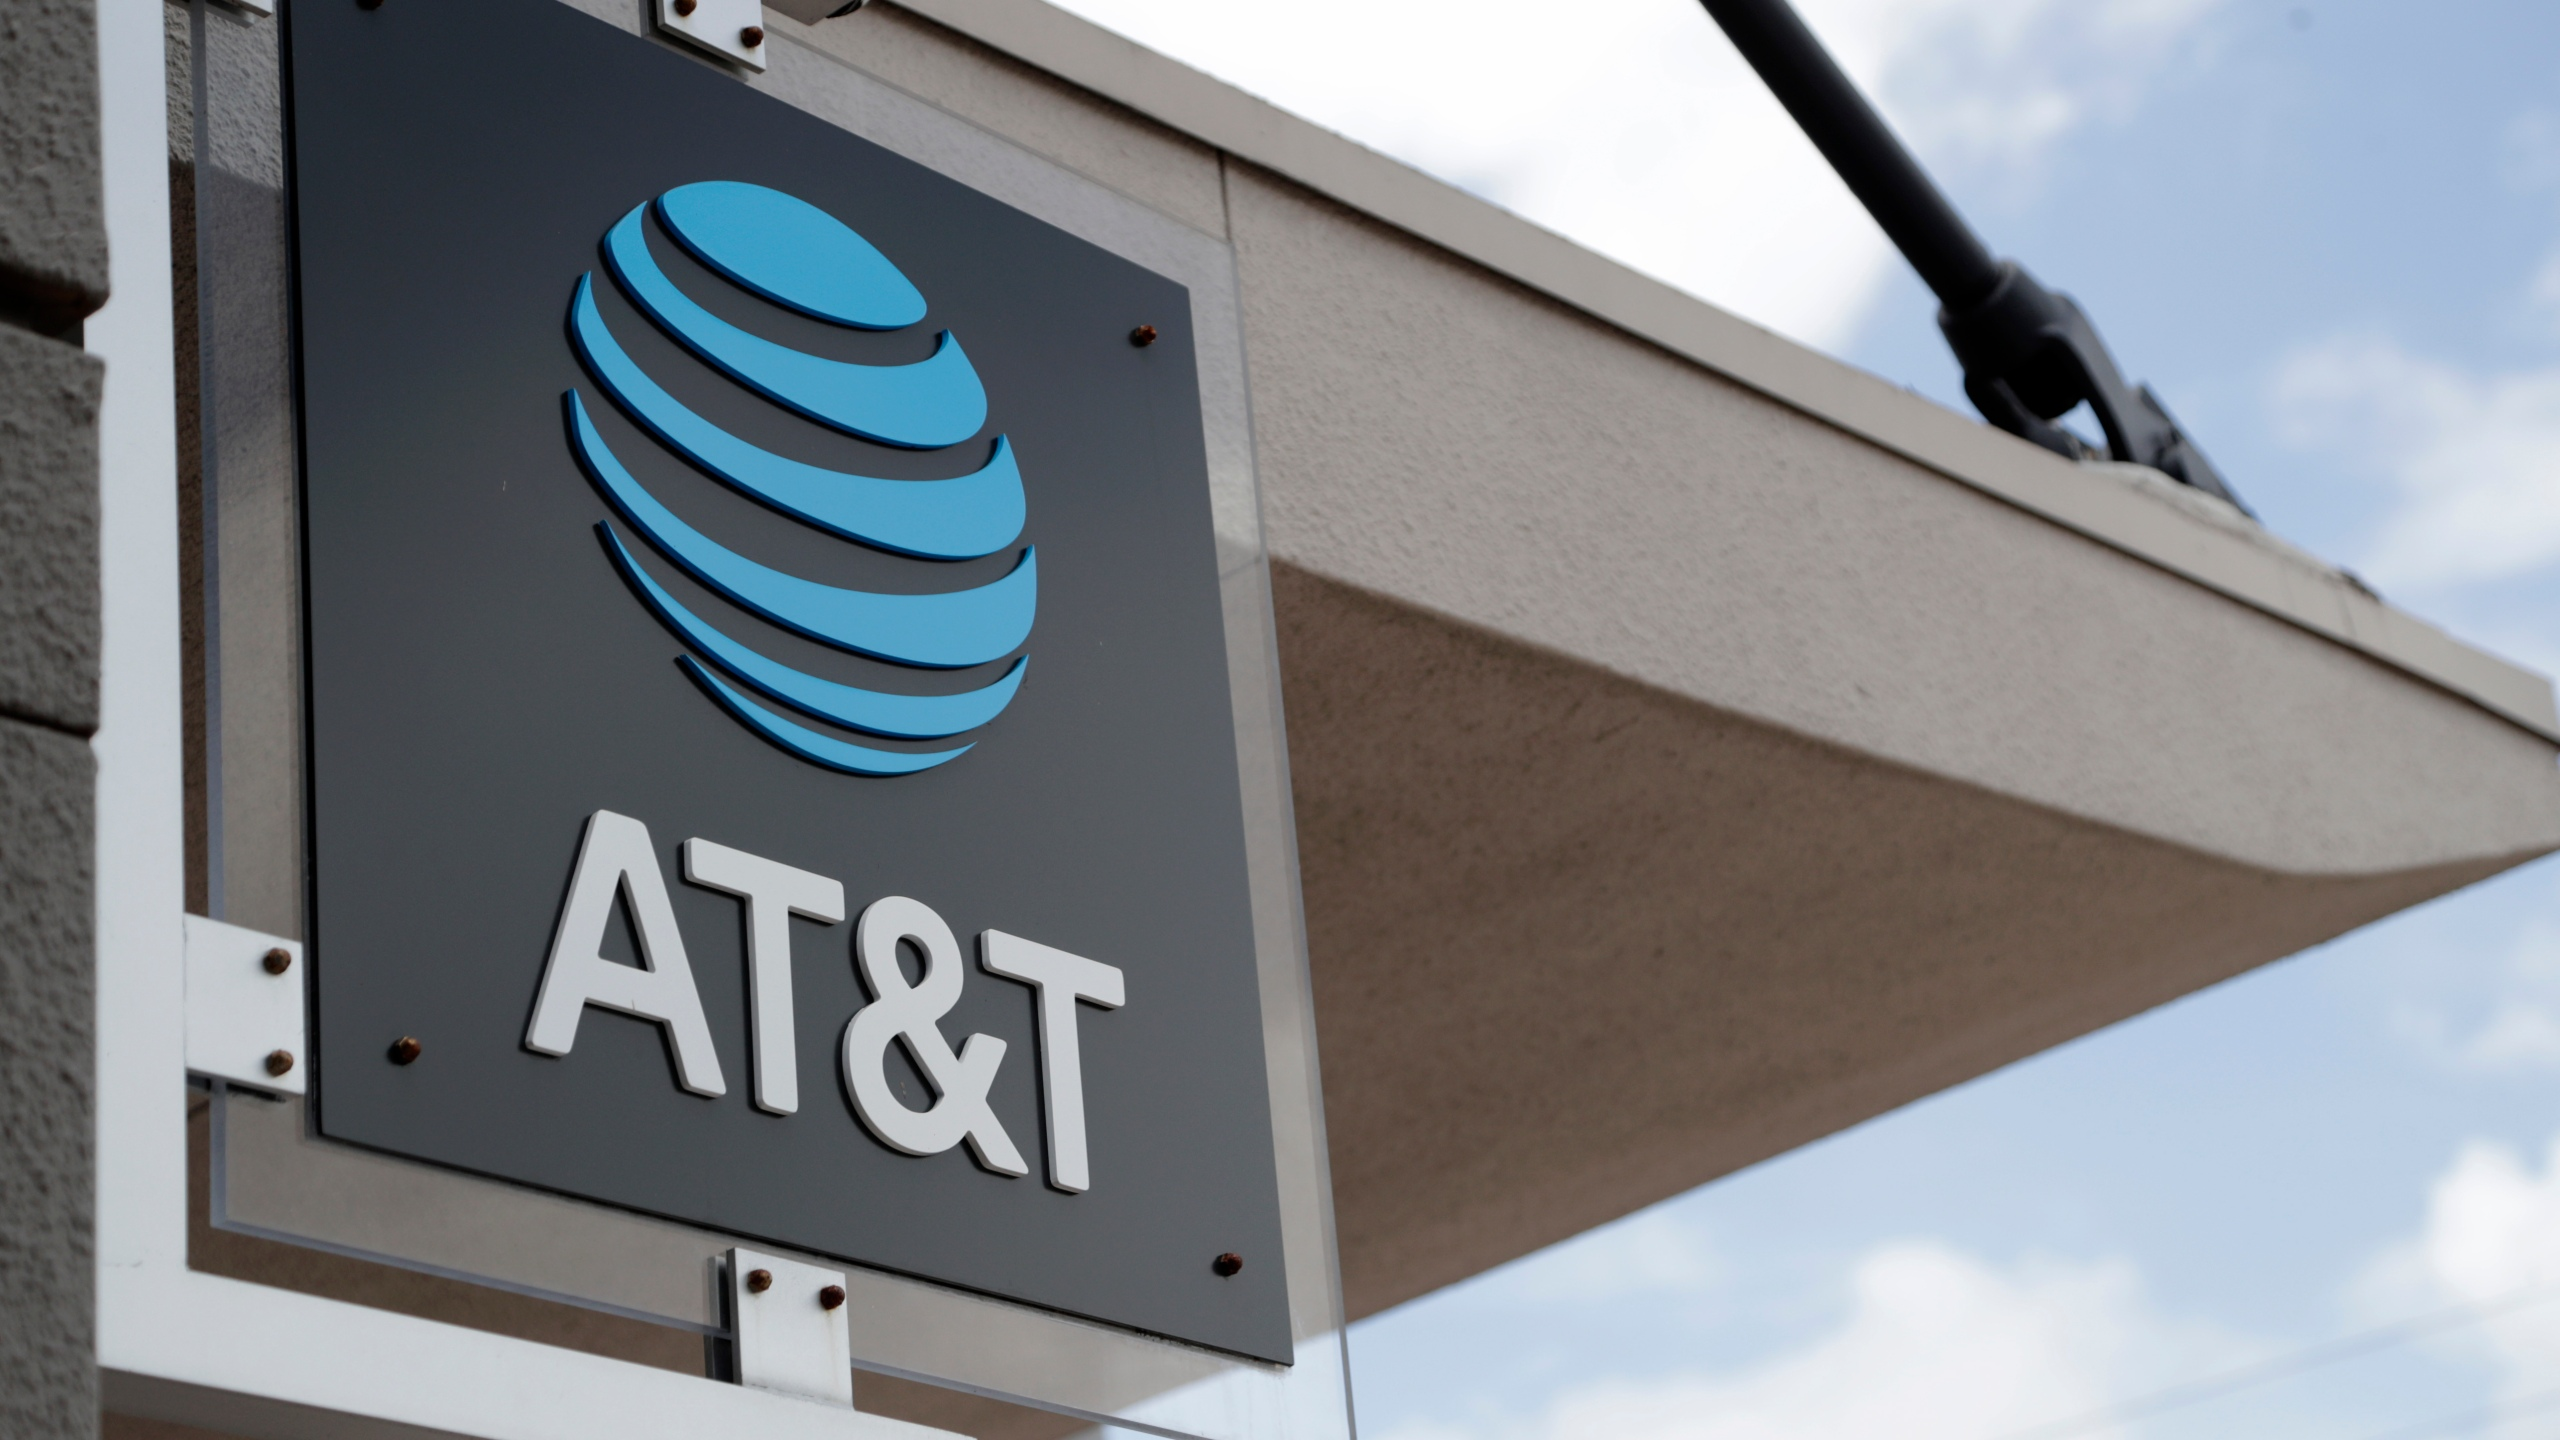 In this July 18, 2019, file photo, a sign is displayed at an AT&T retail store in Miami. (AP Photo/Lynne Sladky, File)